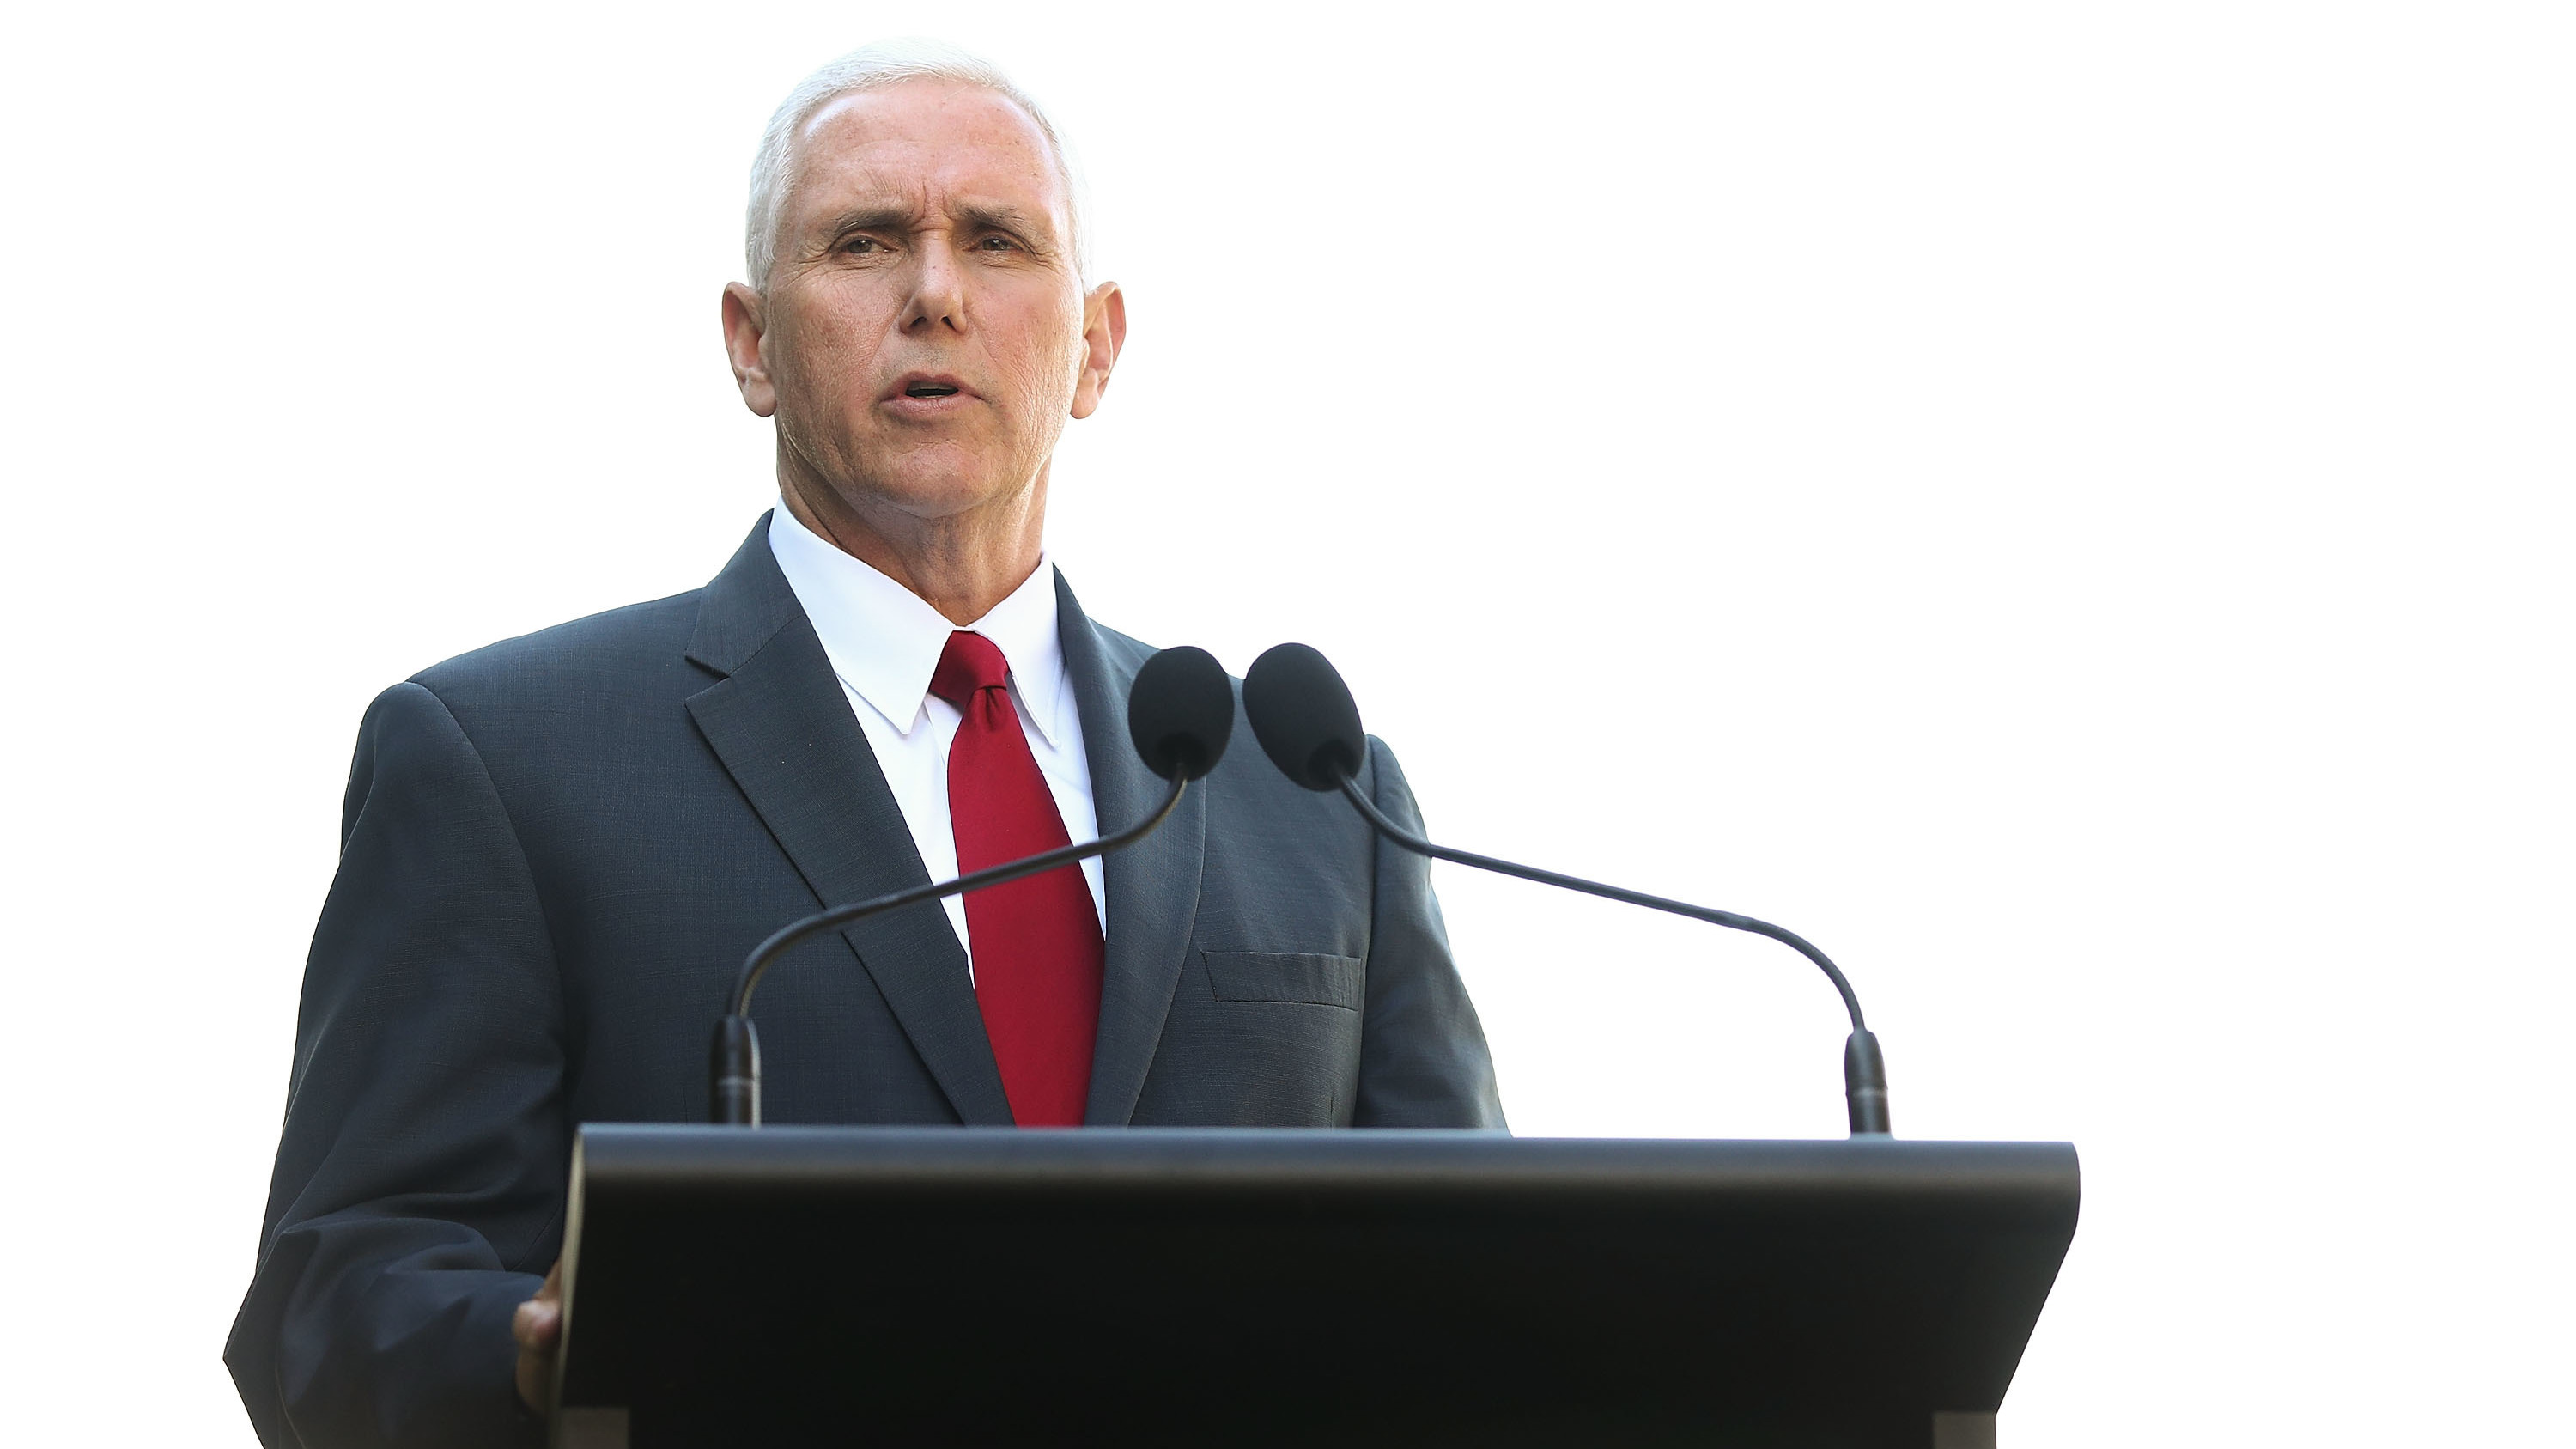 VP Pence hires outside legal counsel